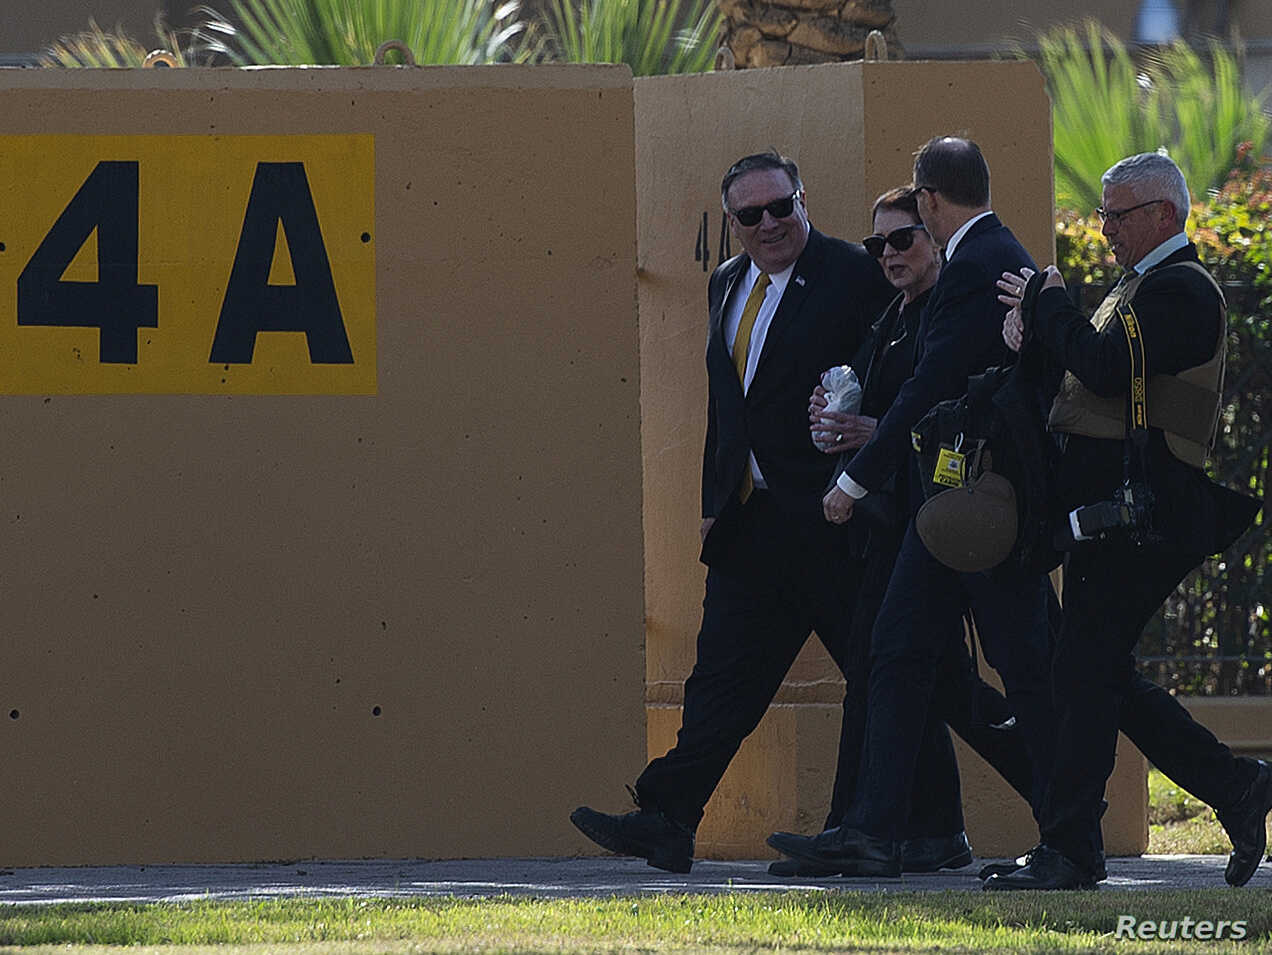 FILE - U.S. Secretary of State Mike Pompeo and his wife, Susan, walk at the U.S. Embassy compound in Baghdad, Jan. 9, 2019. The U.S. has ordered all non-essential personnel to leave the Iraq embassy.